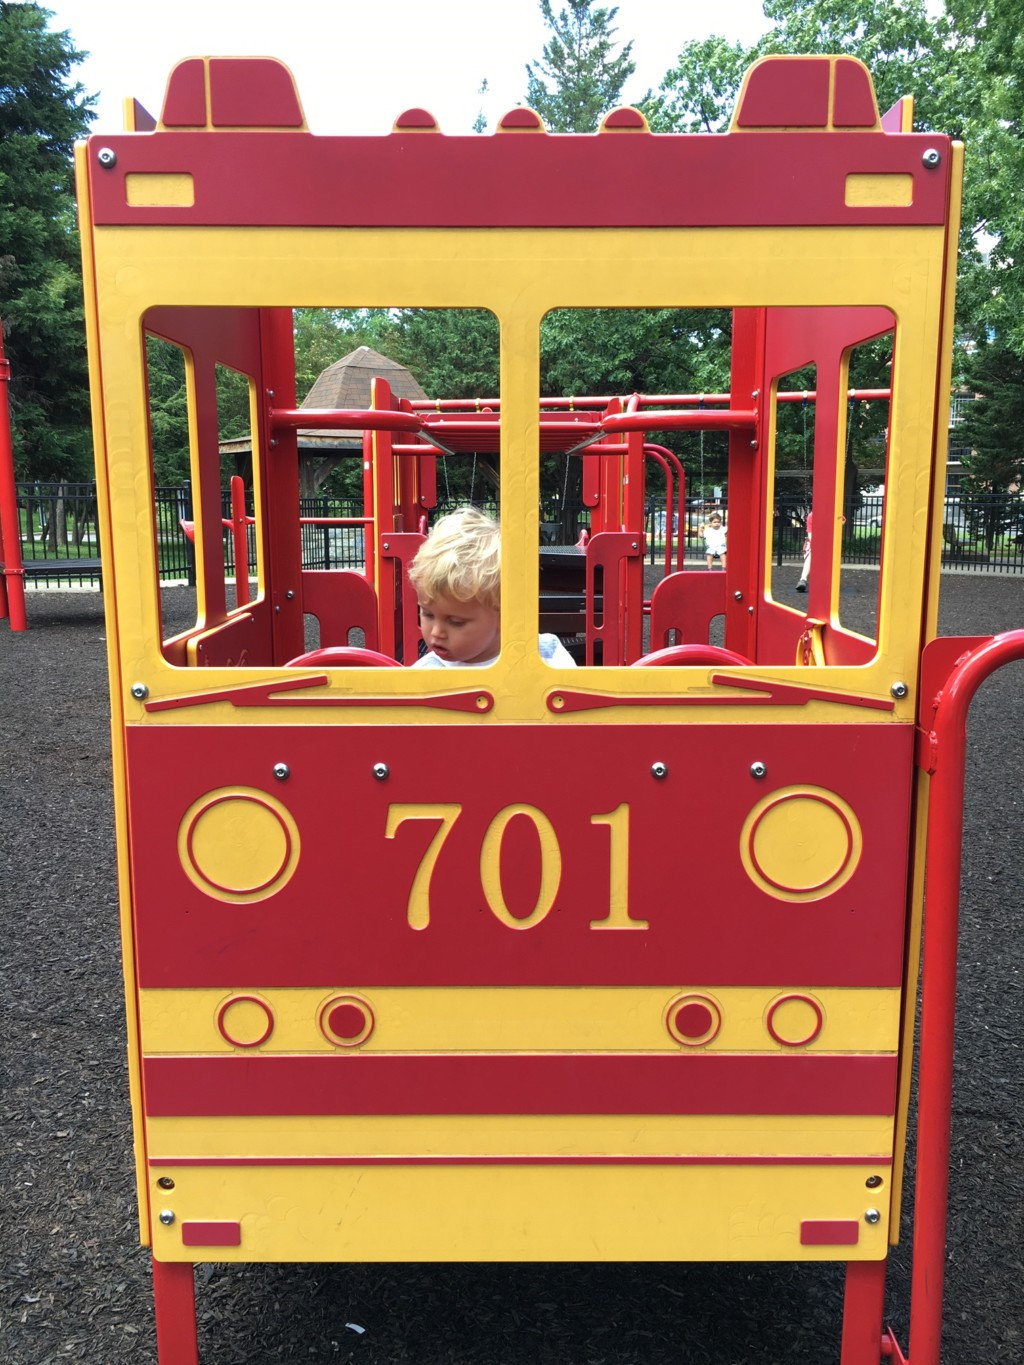 At a playground, a toddler sits behind the steering wheel of a large bright red and yellow fire engine.